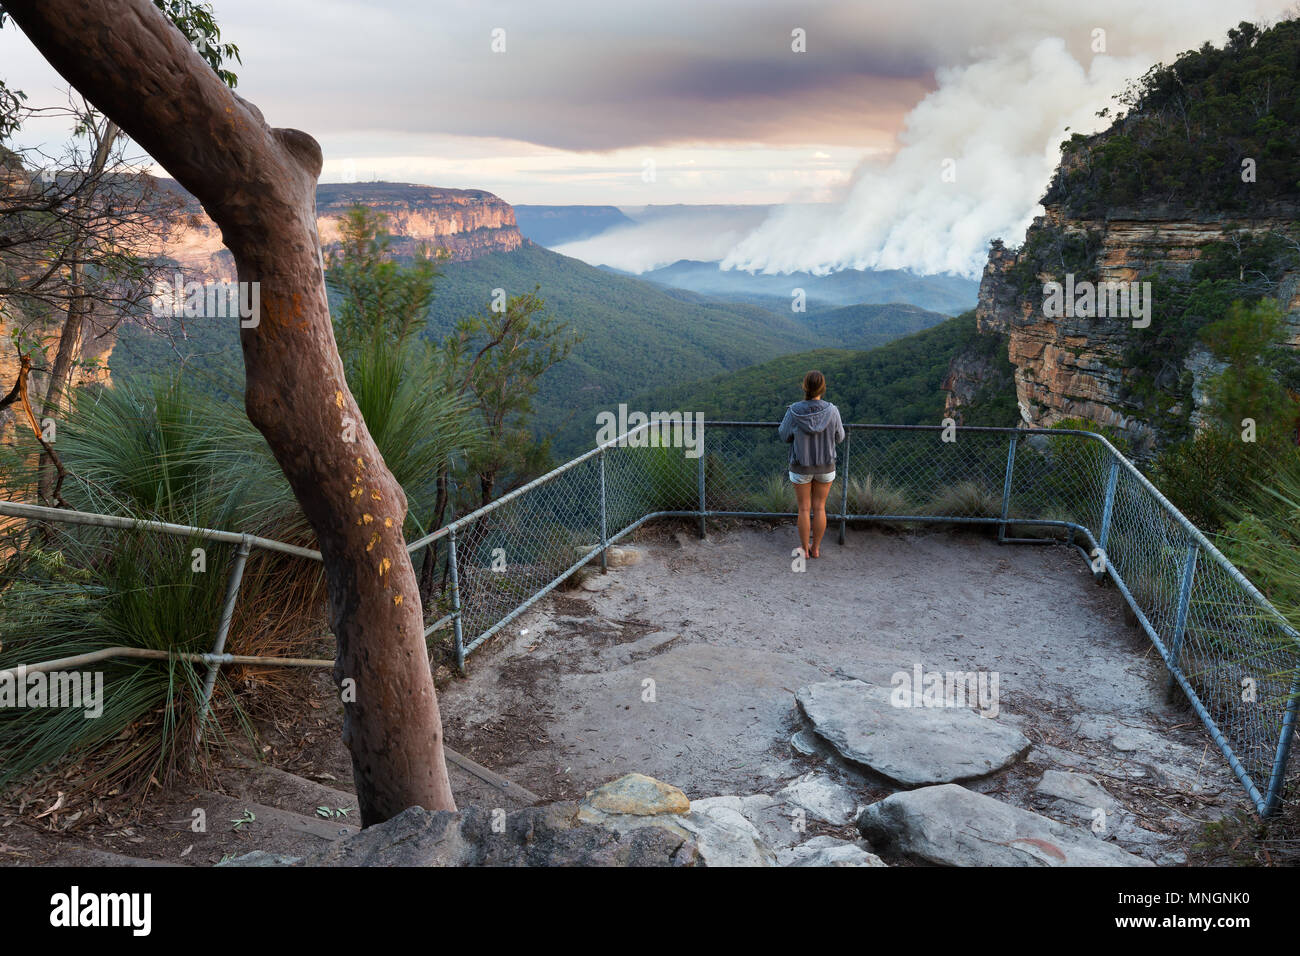 Girl at a bushwalking lookout with a view over a remote bushfire and smoke in the Blue Mountains, New South Wales, Australia. - Stock Image